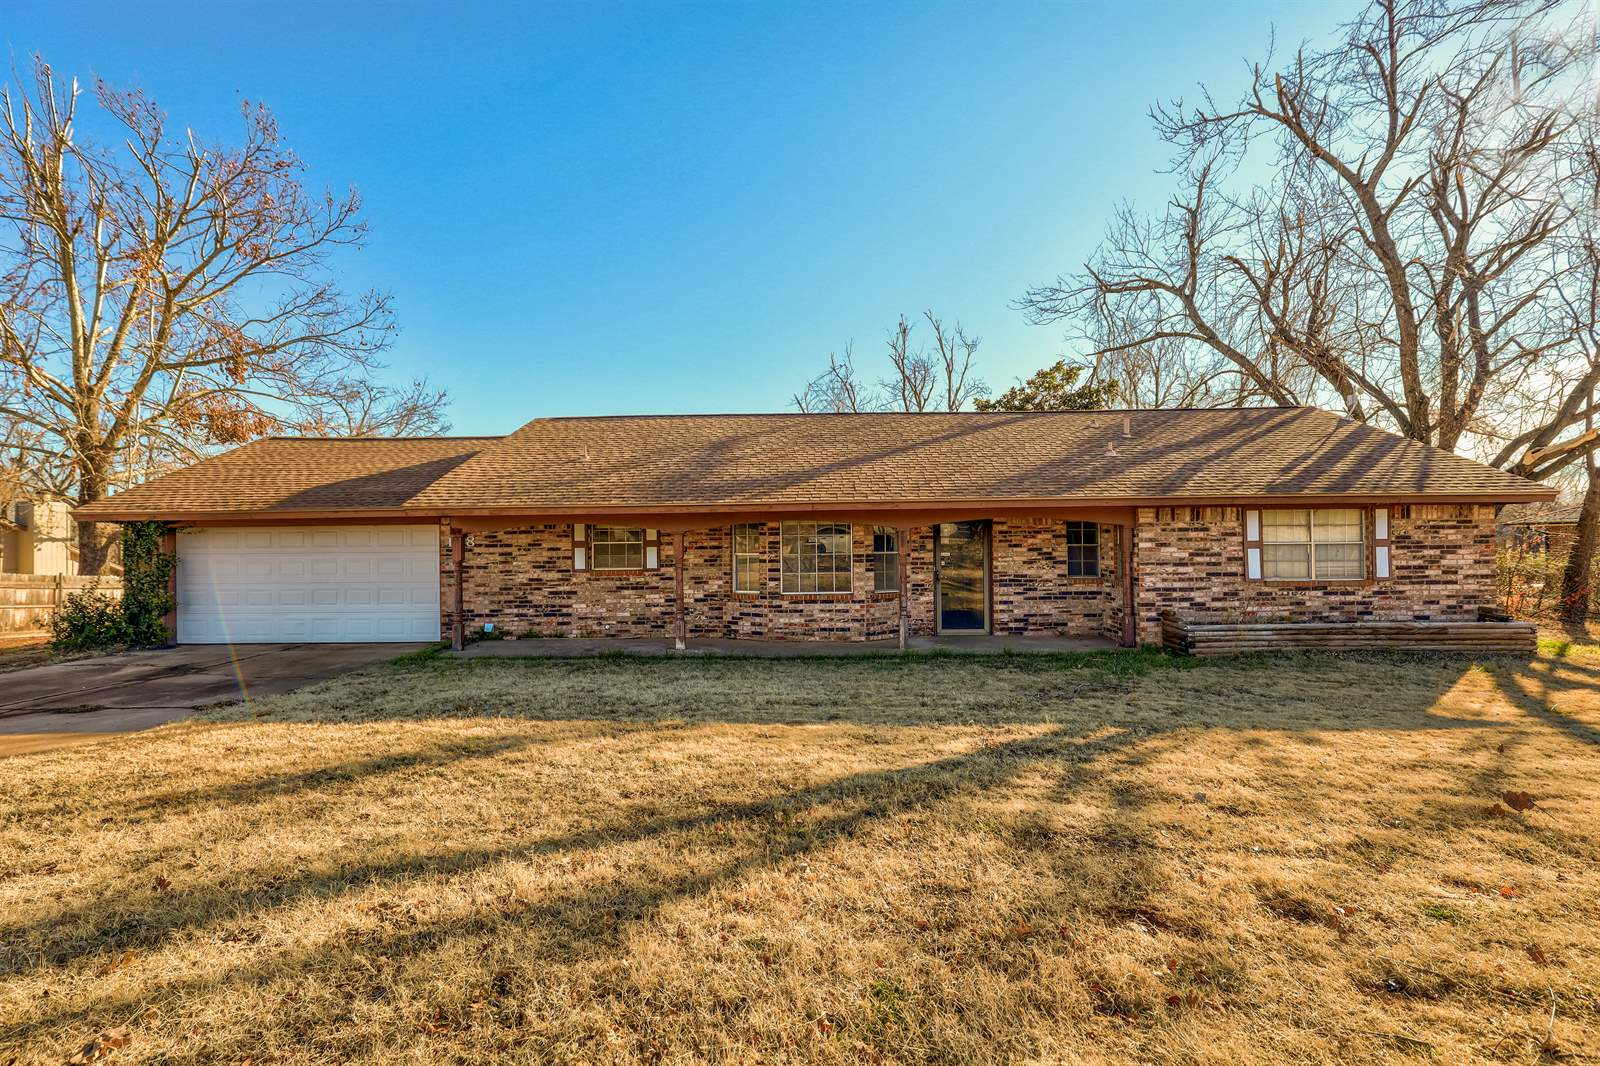 108 Pinewood Dr, Tuttle, OK 73089